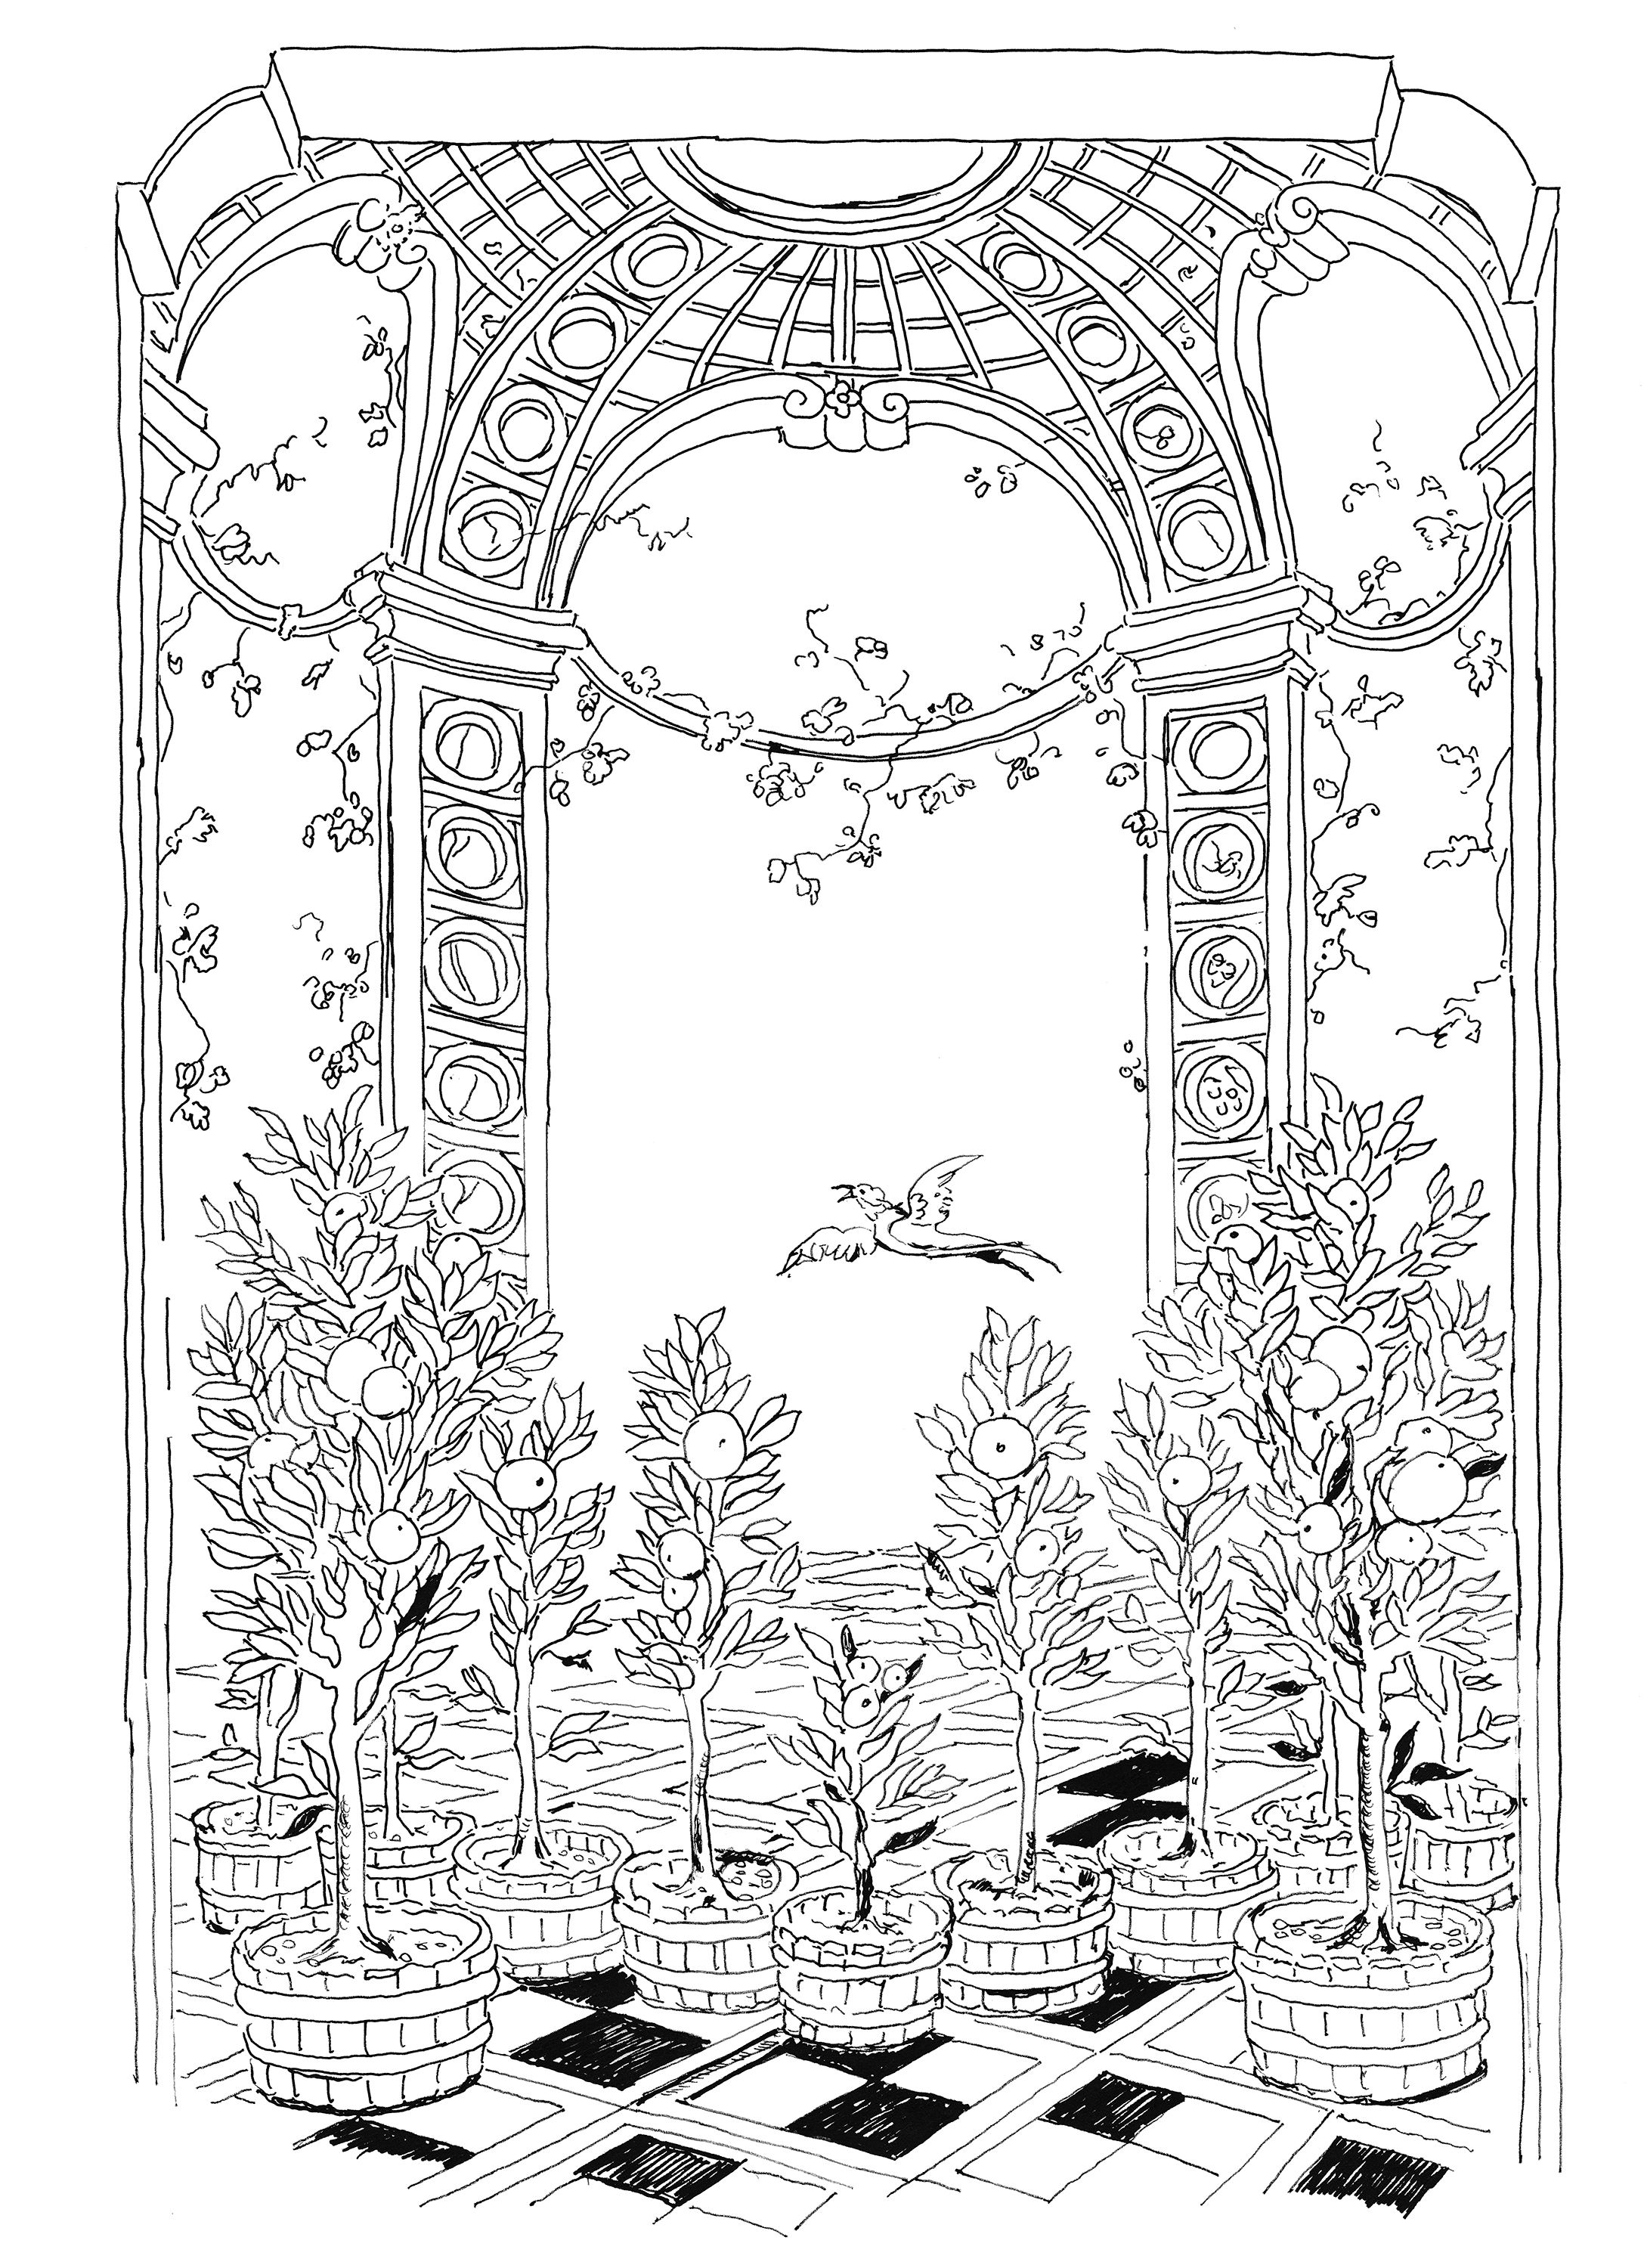 Lost Garden coloring book orangery by Pippa Rossi Adult coloring